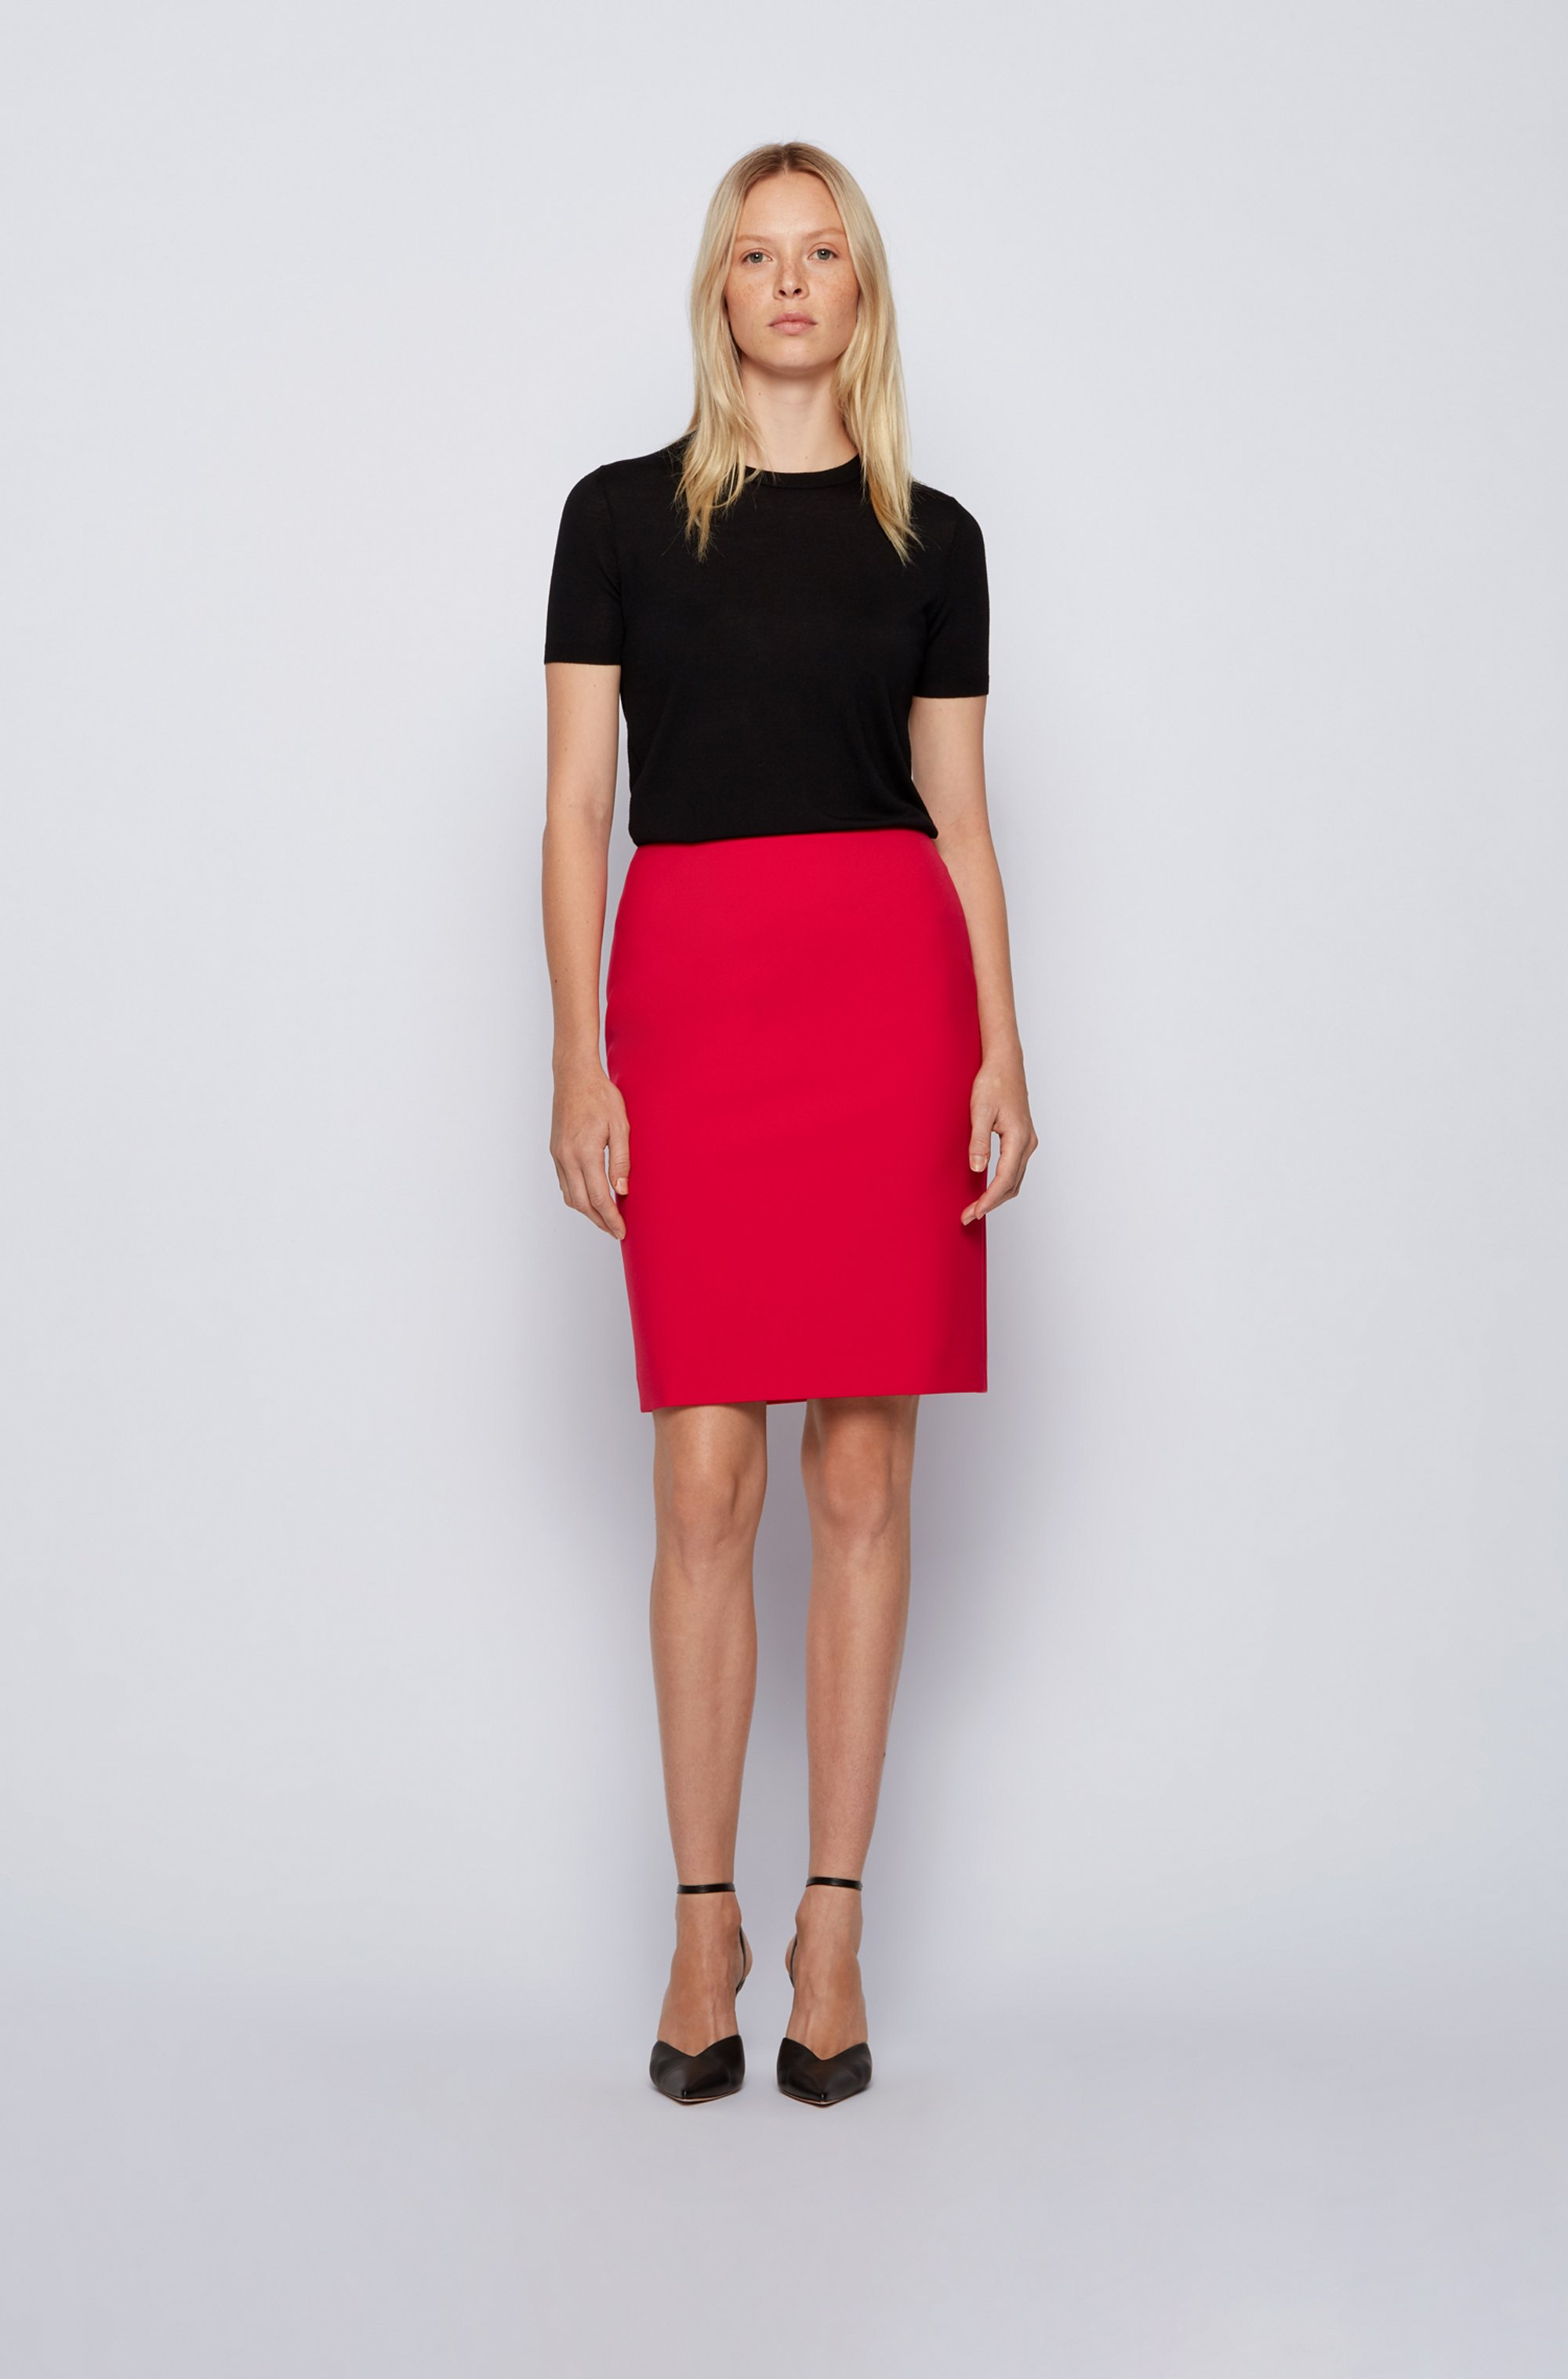 High-waisted pencil skirt in Portuguese stretch fabric